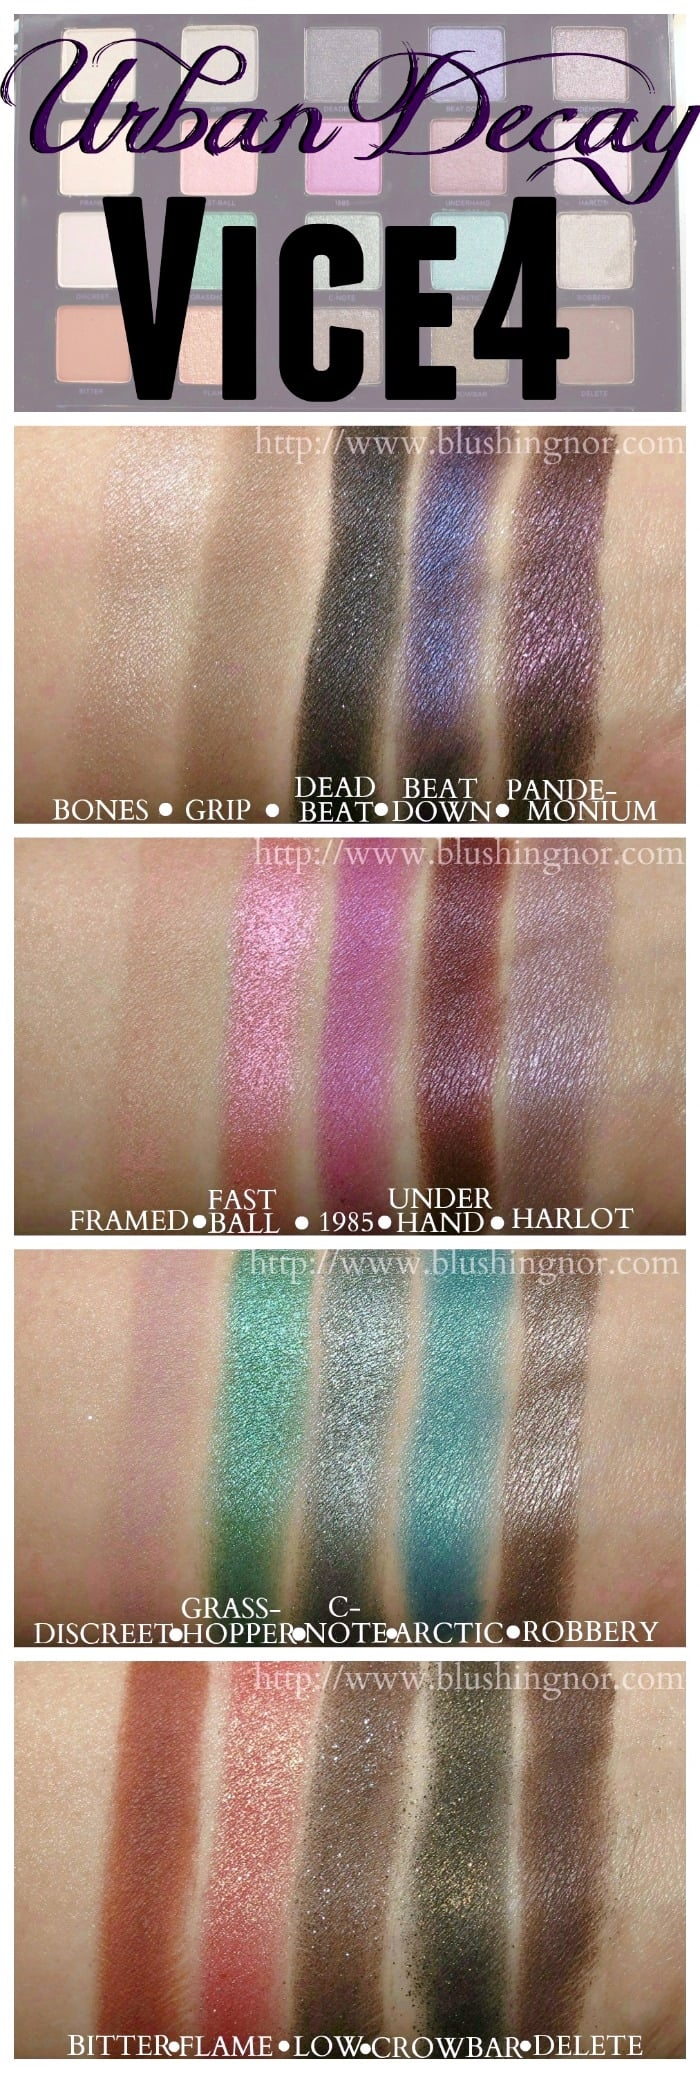 Urban Decay Vice 4 Eyeshadow Palette Swatches Amp Review